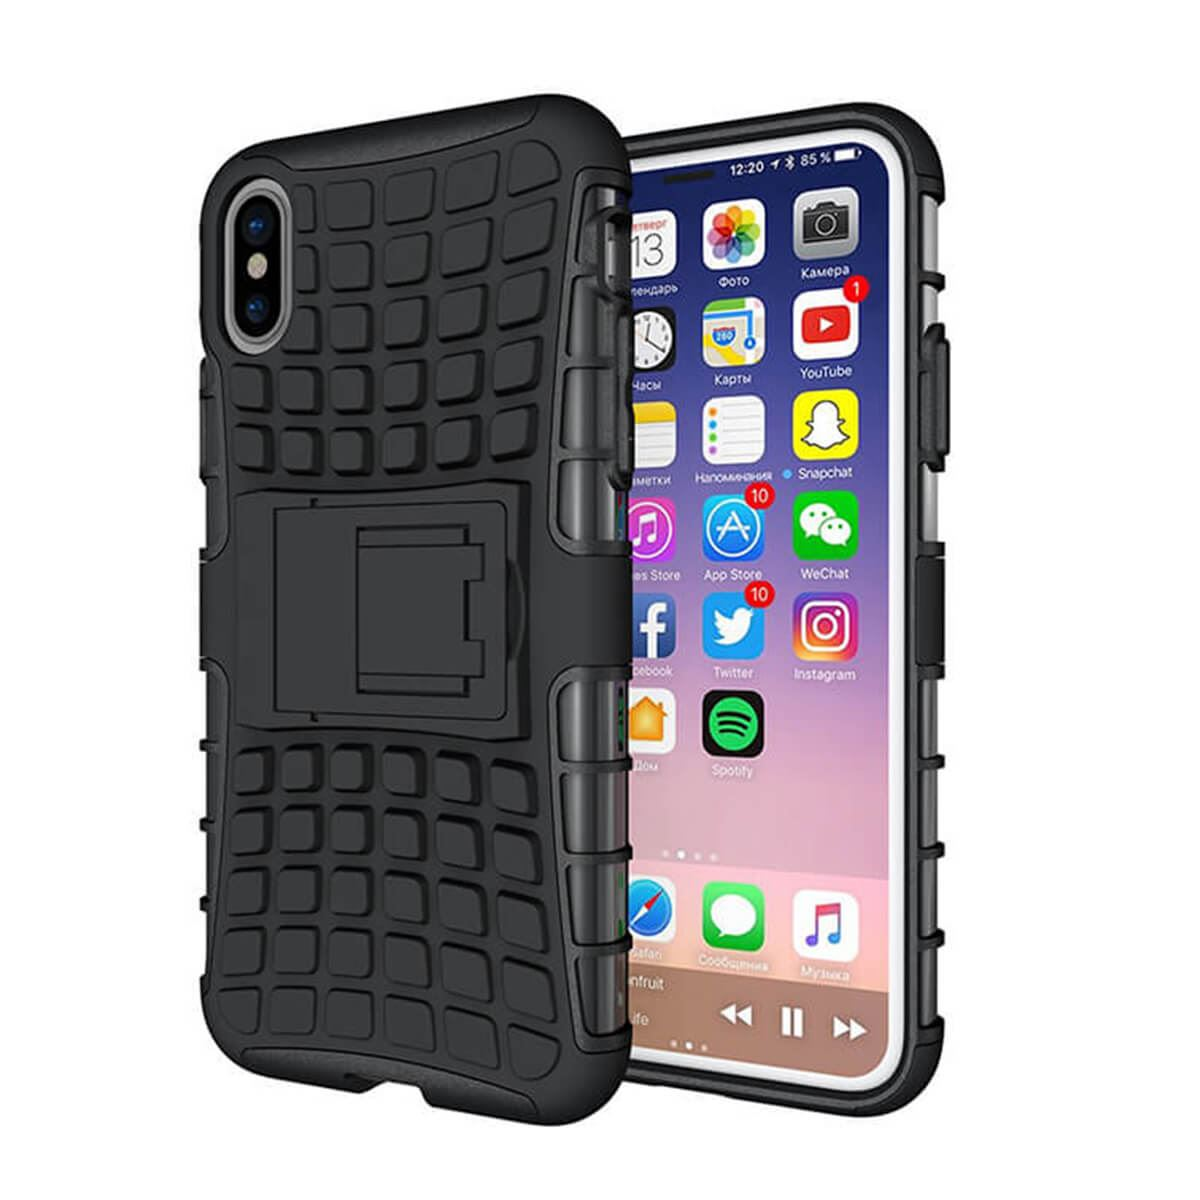 Shockproof-Case-Apple-iPhone-10-X-8-7-6s-Se-5-Hard-Heavy-Duty-Stand-Armour-Cover thumbnail 5